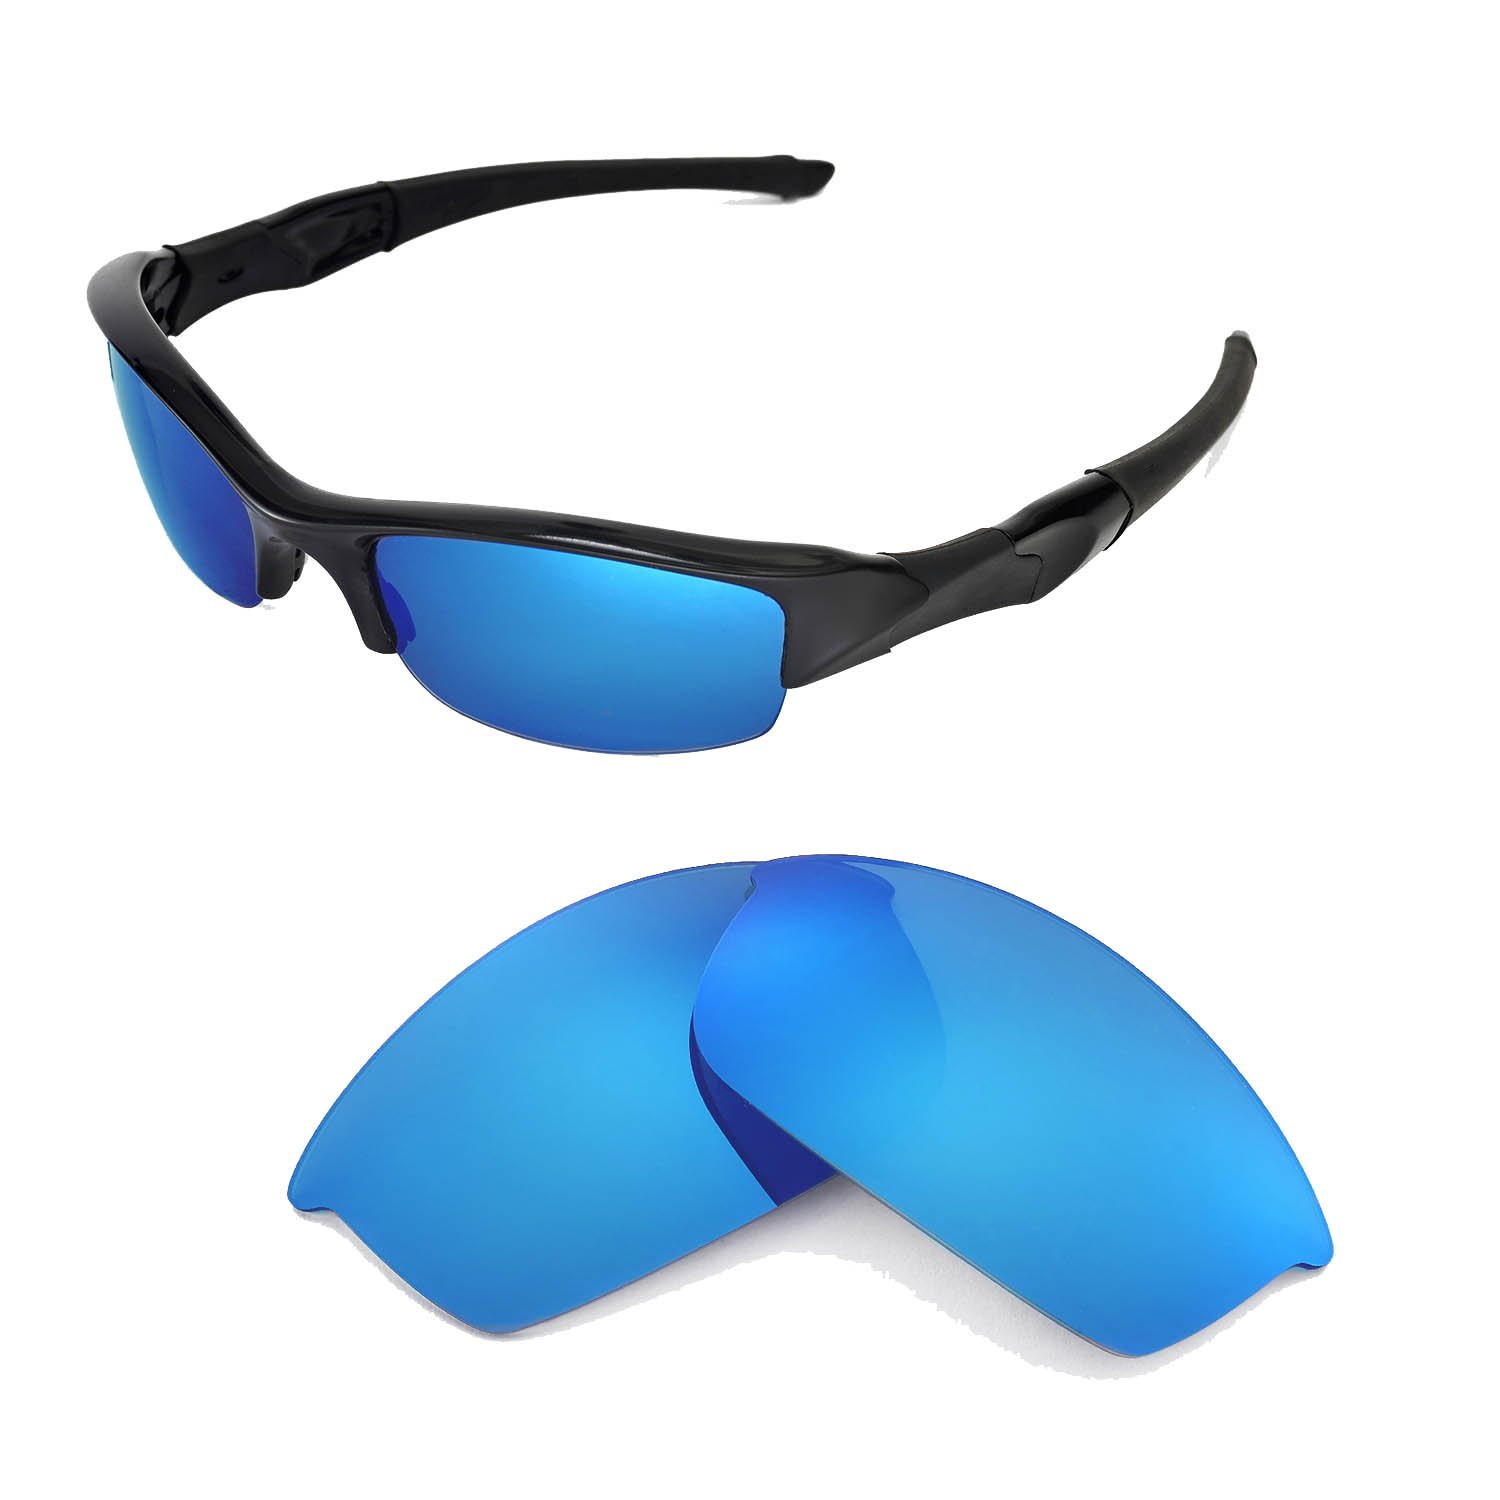 Walleva Polarized Ice Blue Replacement Lenses for Oakley Flak Jacket Sunglasses by Walleva